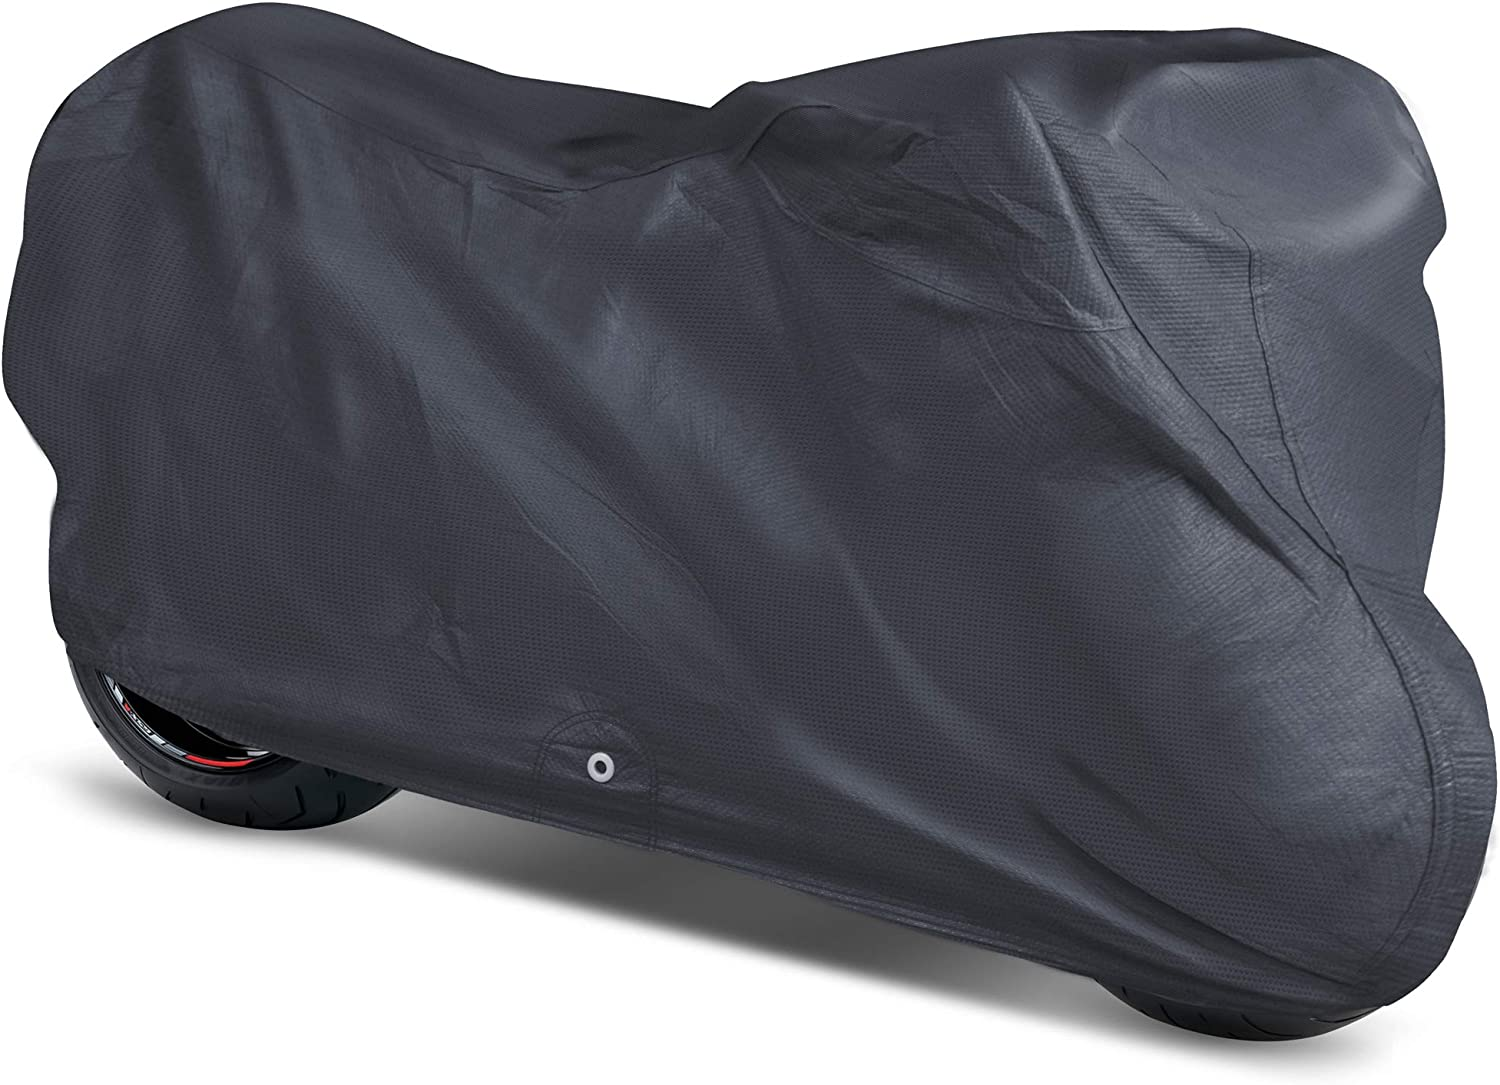 OxGord Signature Motorcycle Cover